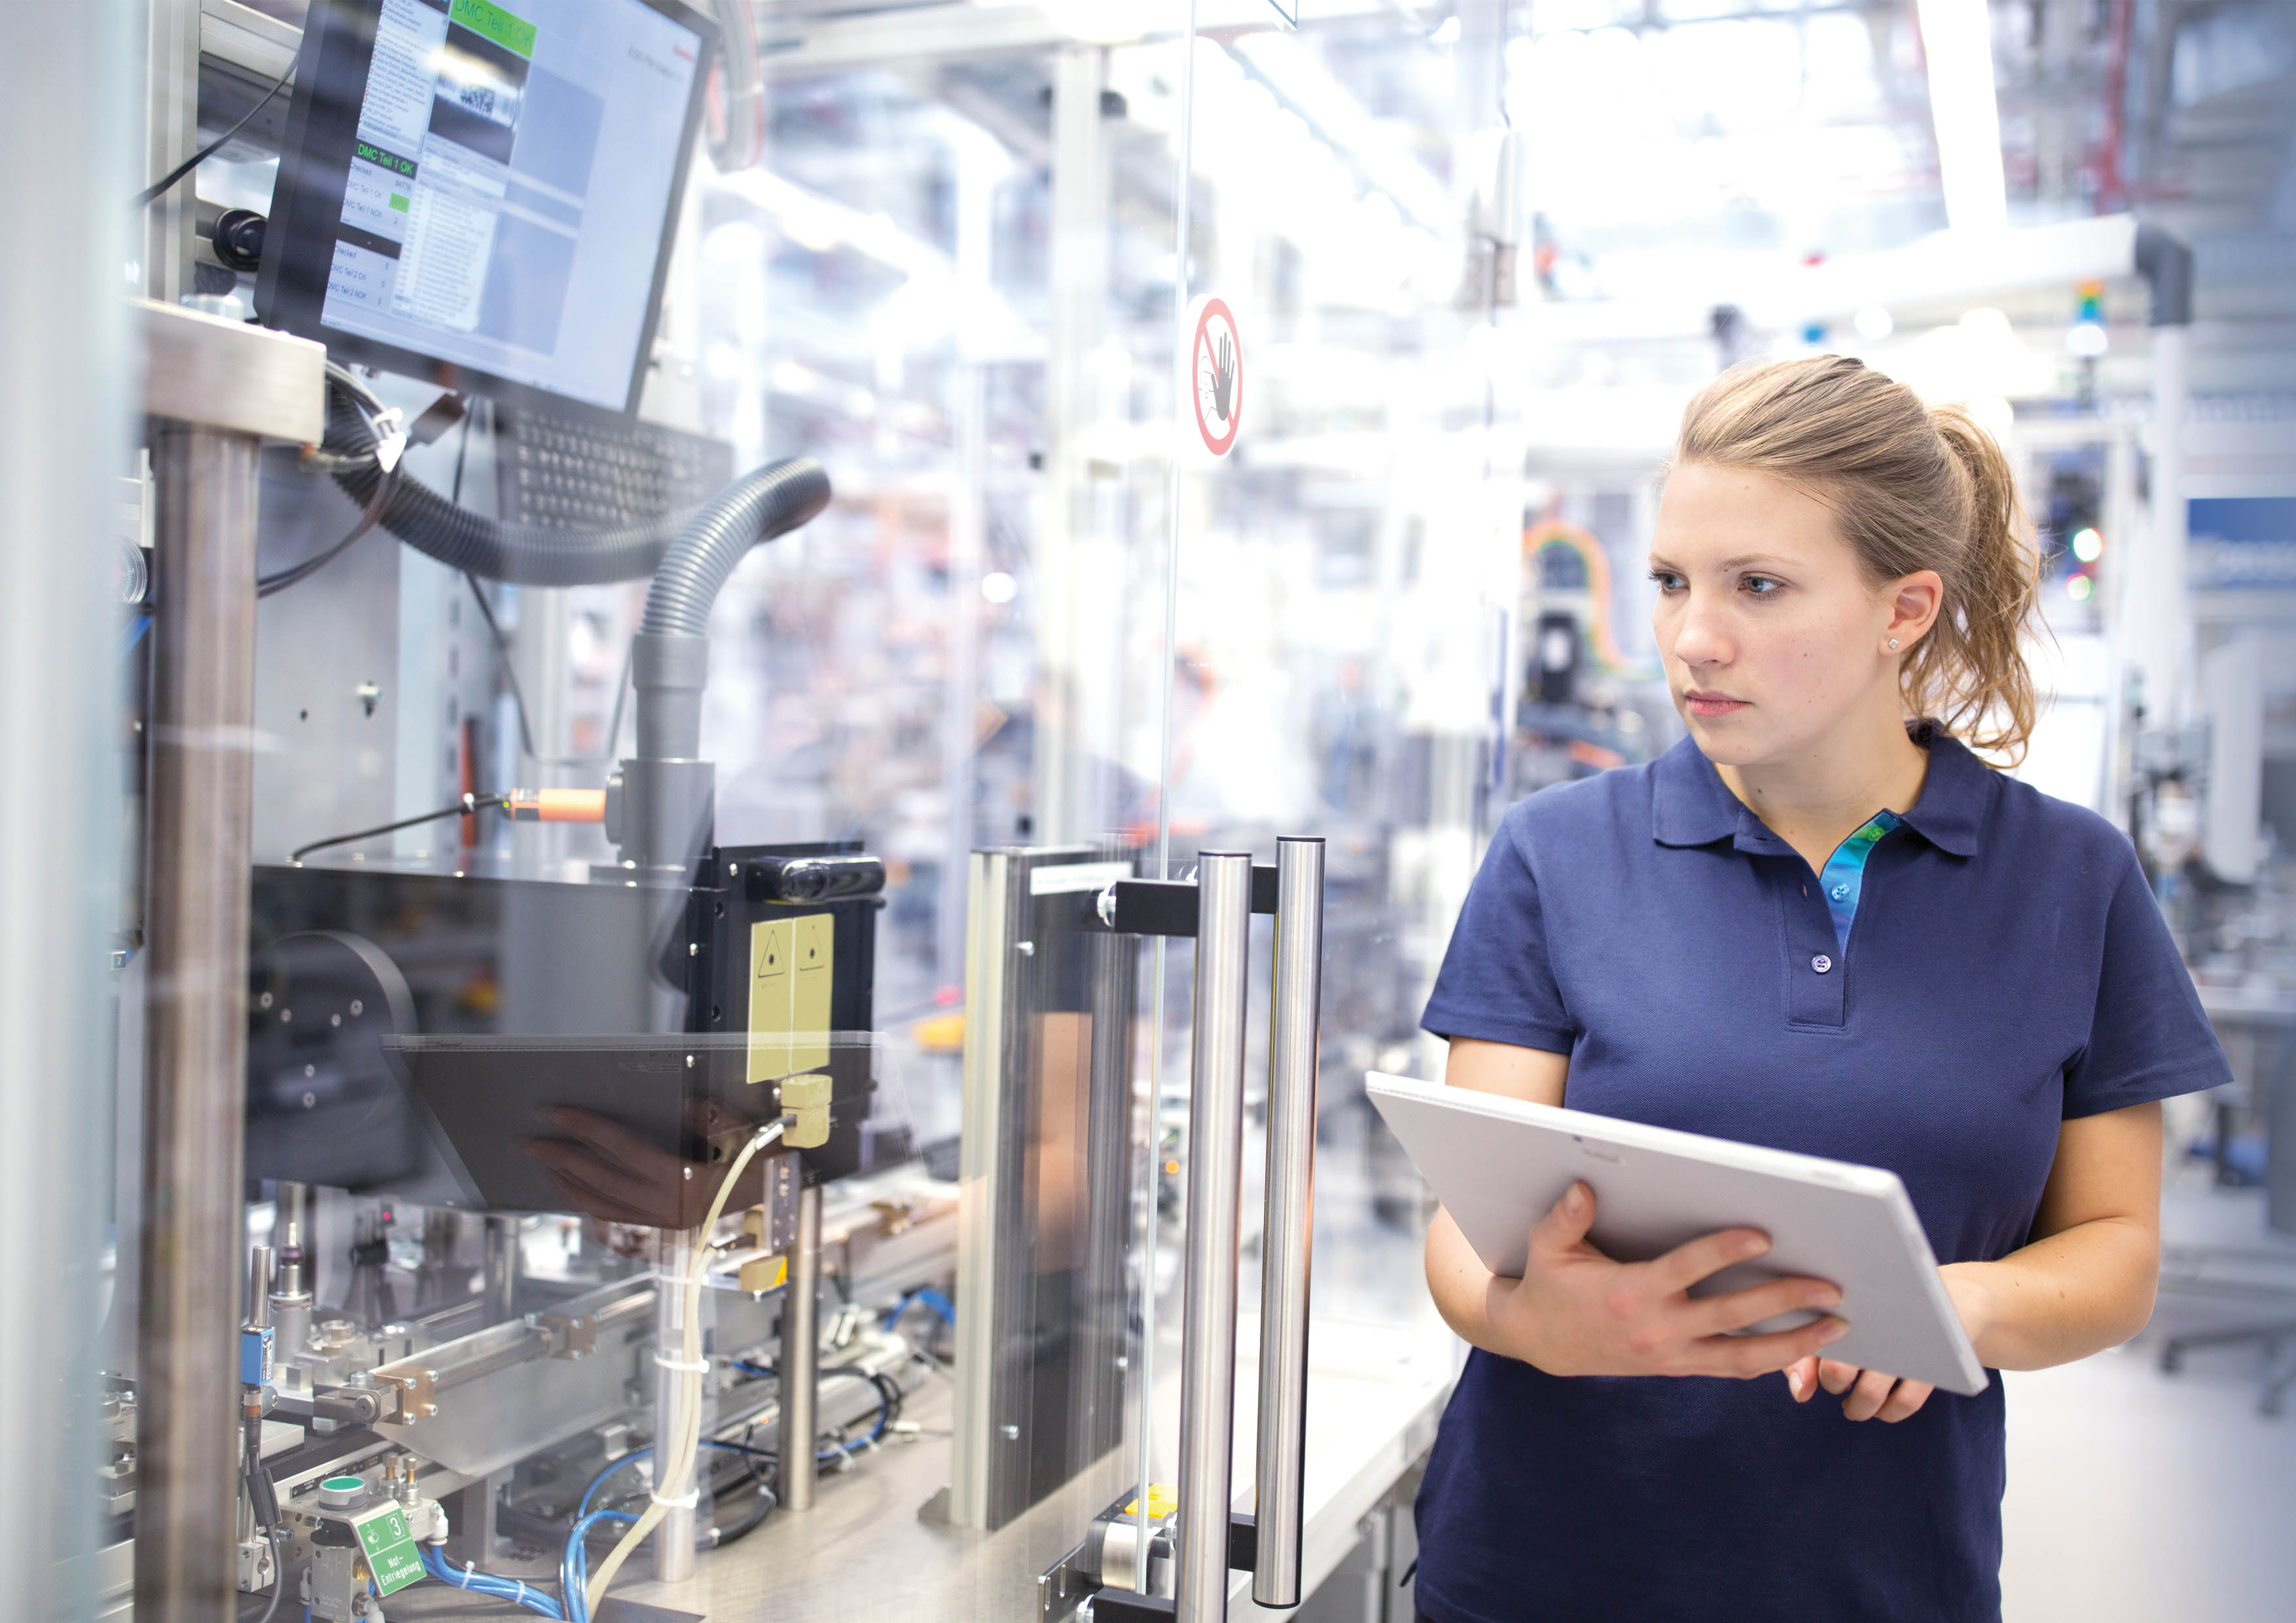 bosch_i40_5g-connected-industry..jpg